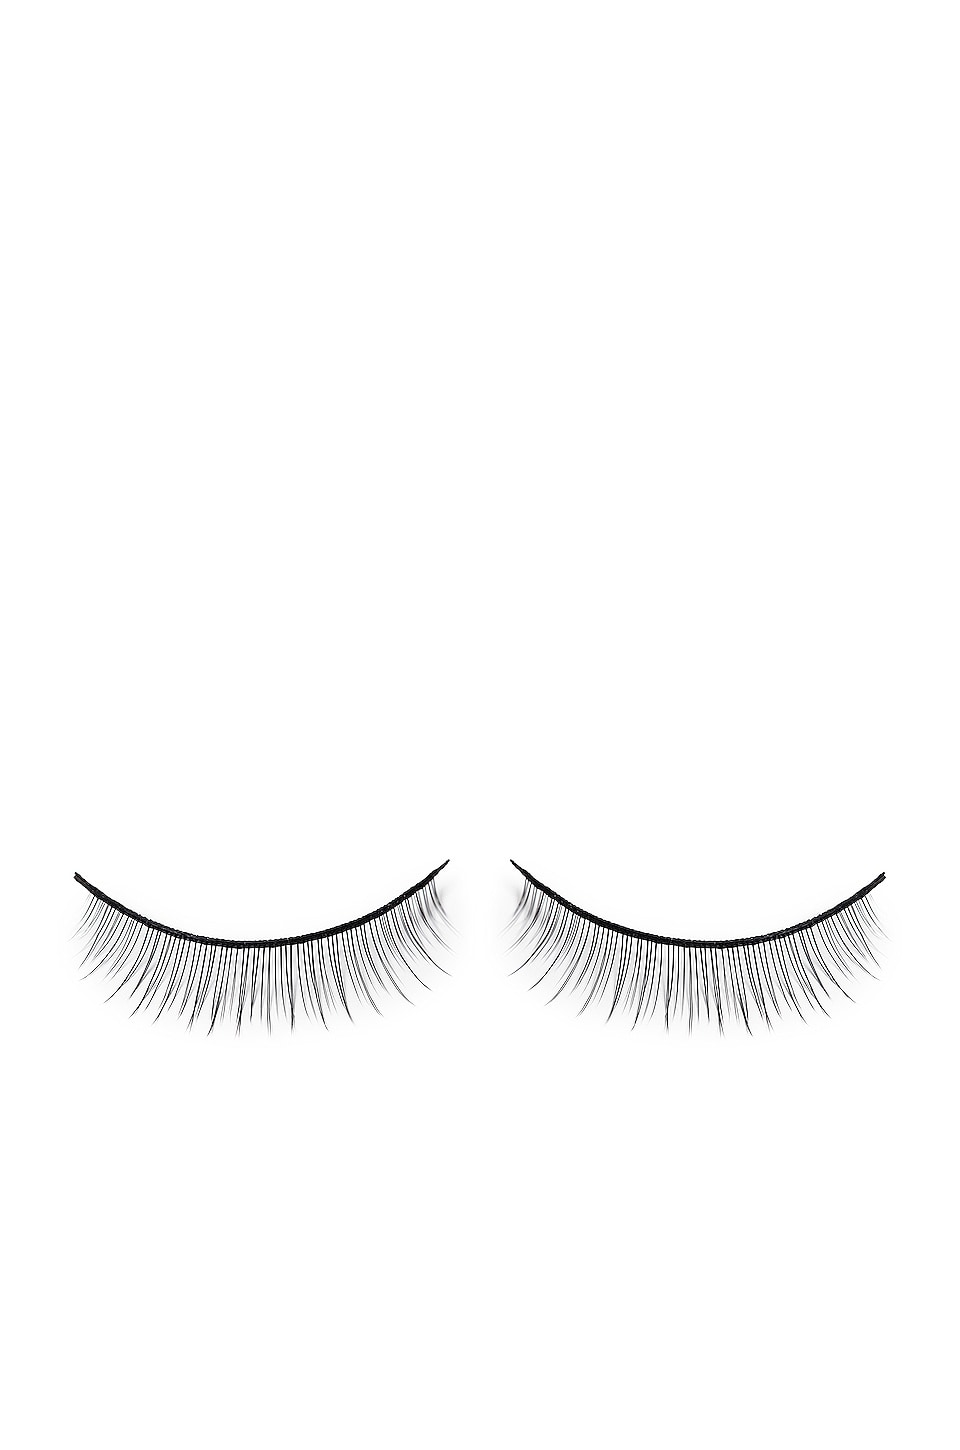 Battington Lashes Earhart Silk Lashes in Black